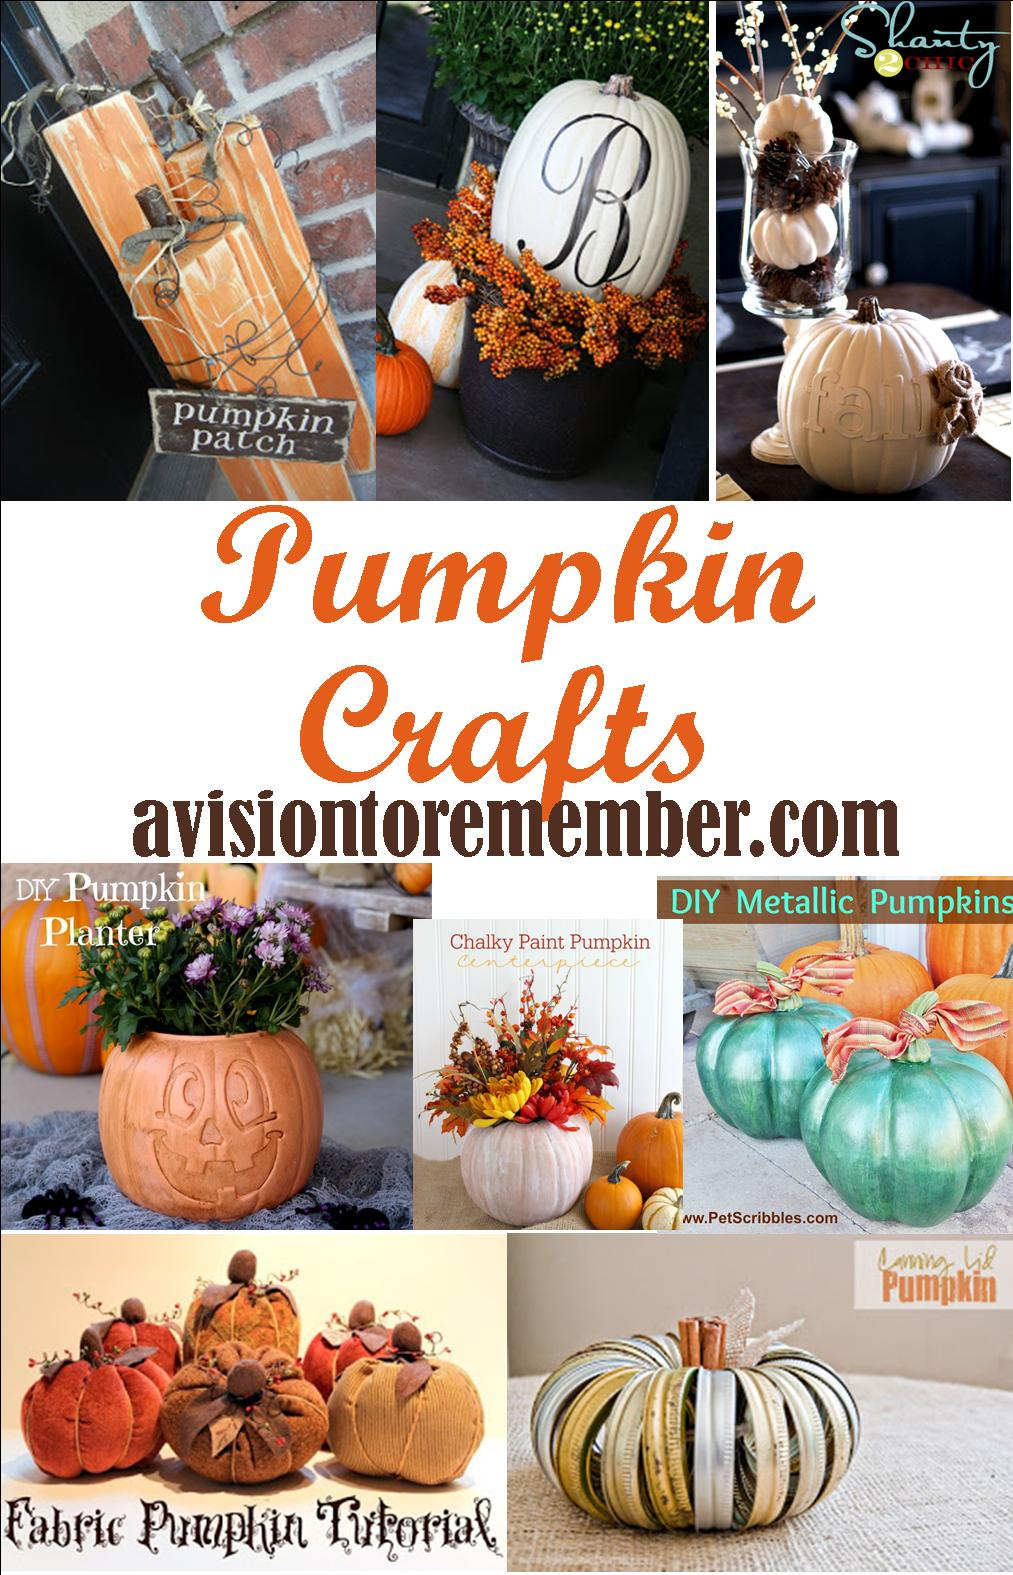 pumpkin crafts ideas on avisiontoremember.com